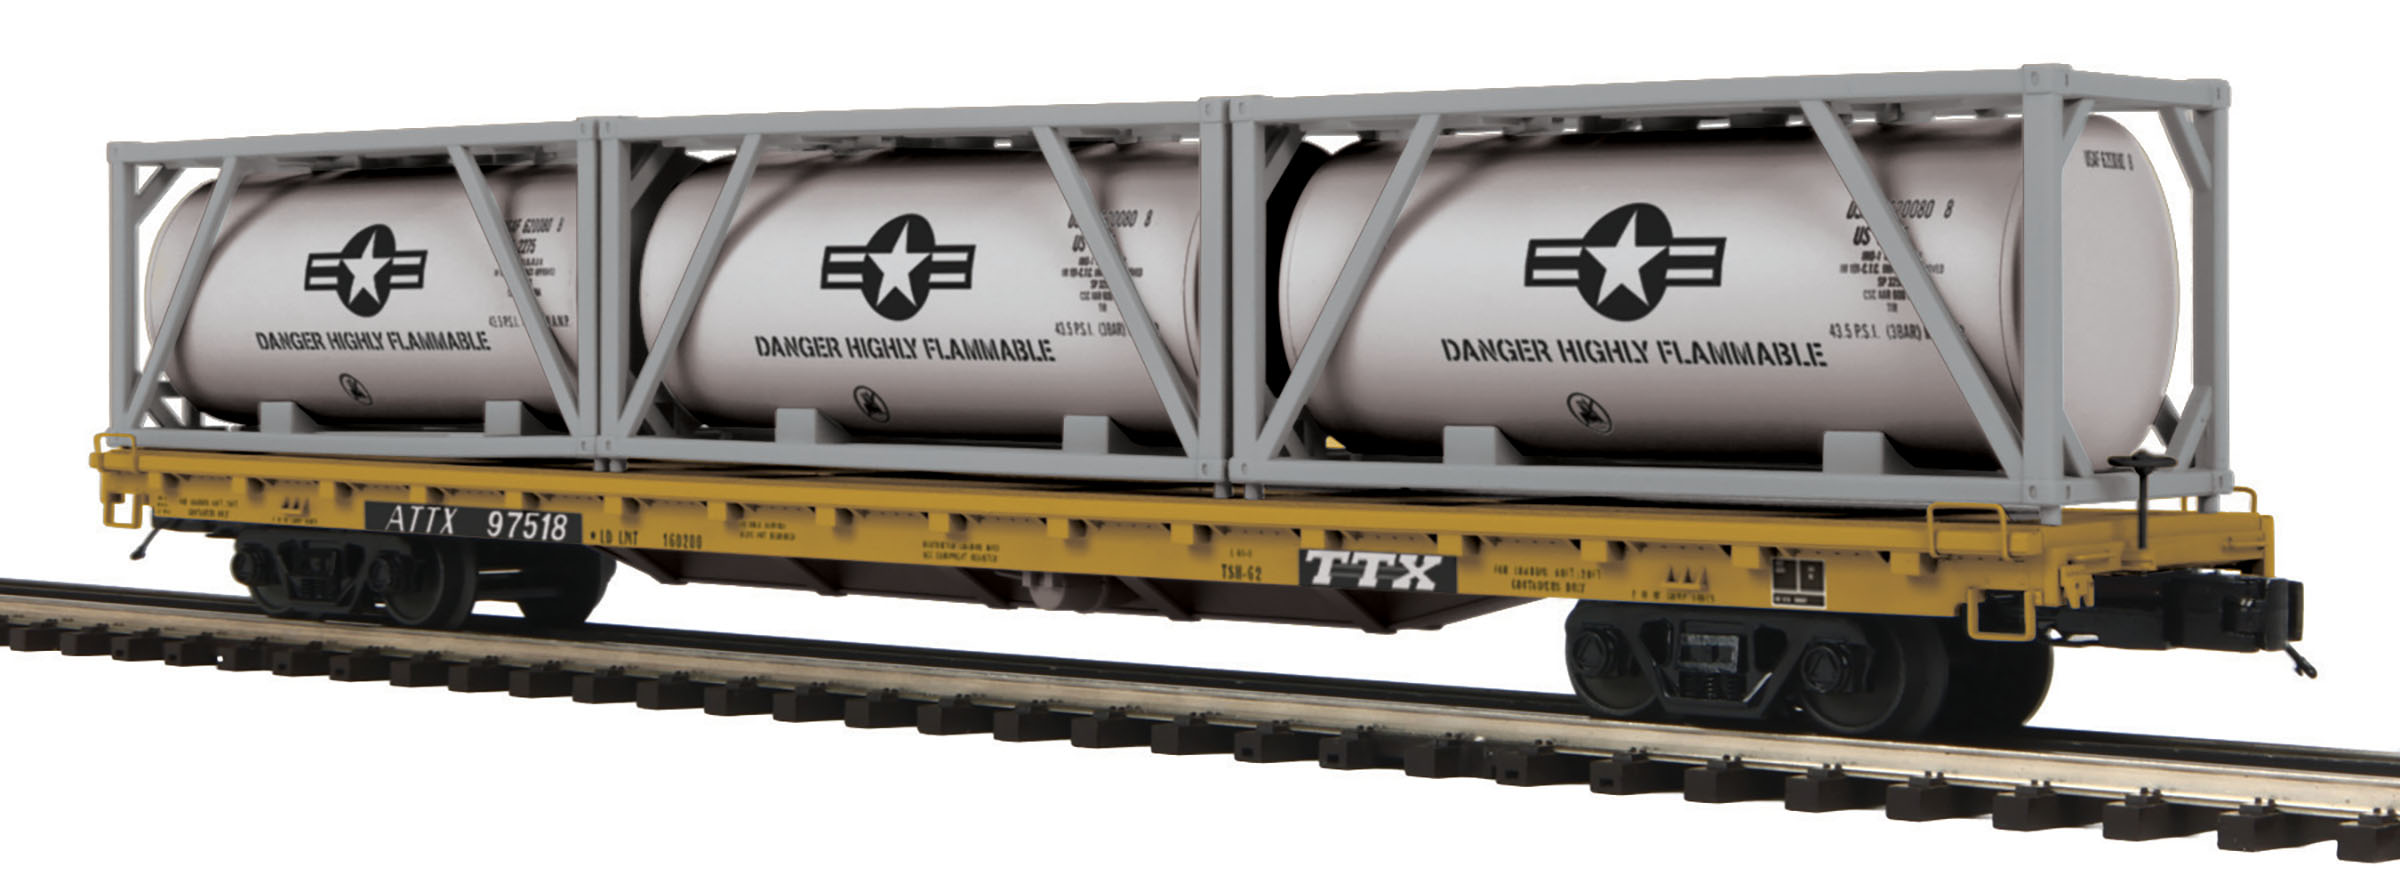 U.S. Air Force Rocket Fuel 60' Flat Car w/(3) Tank Containers image